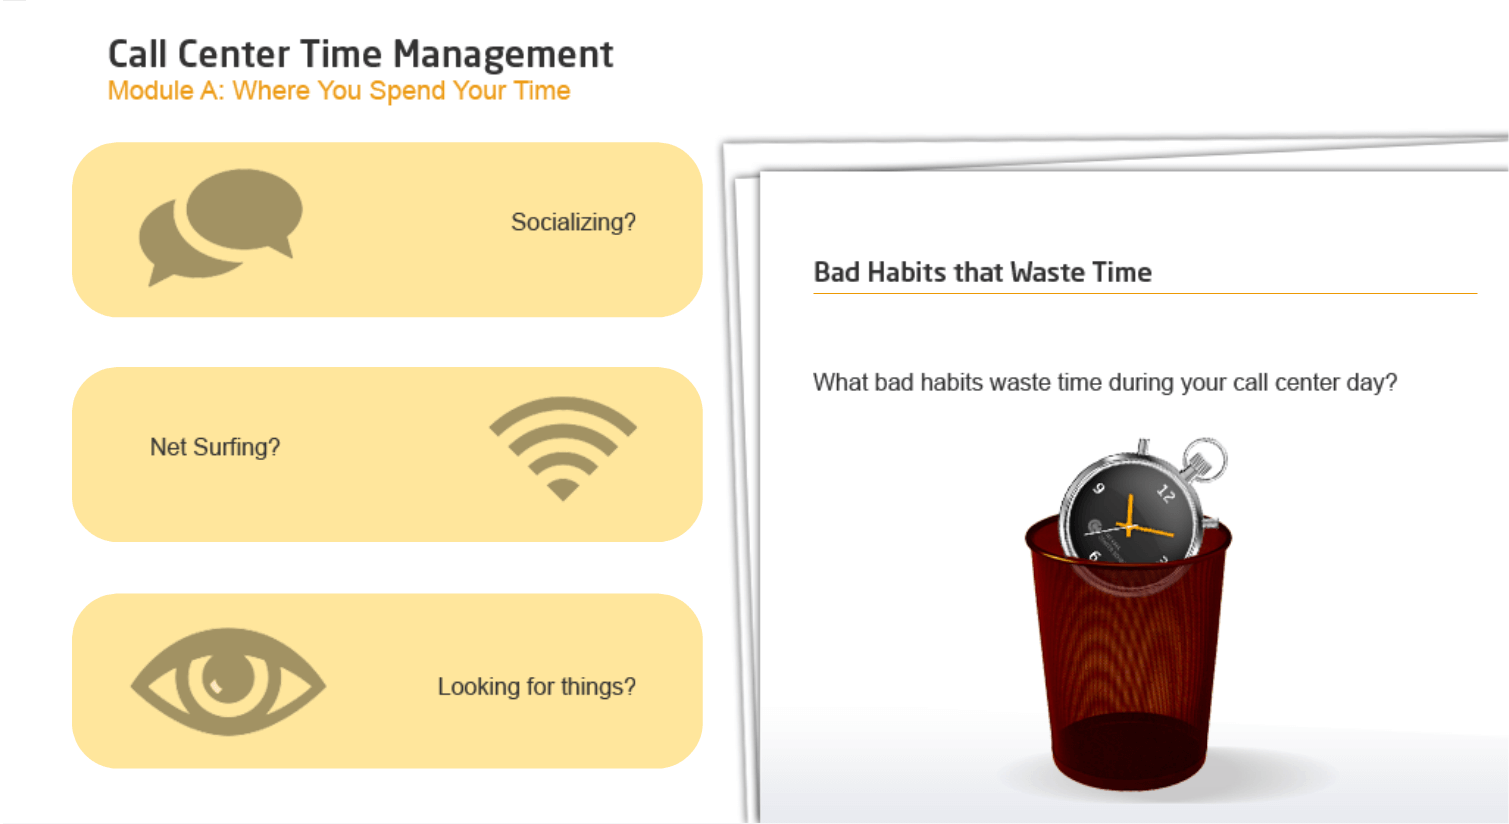 Call Center Time Management